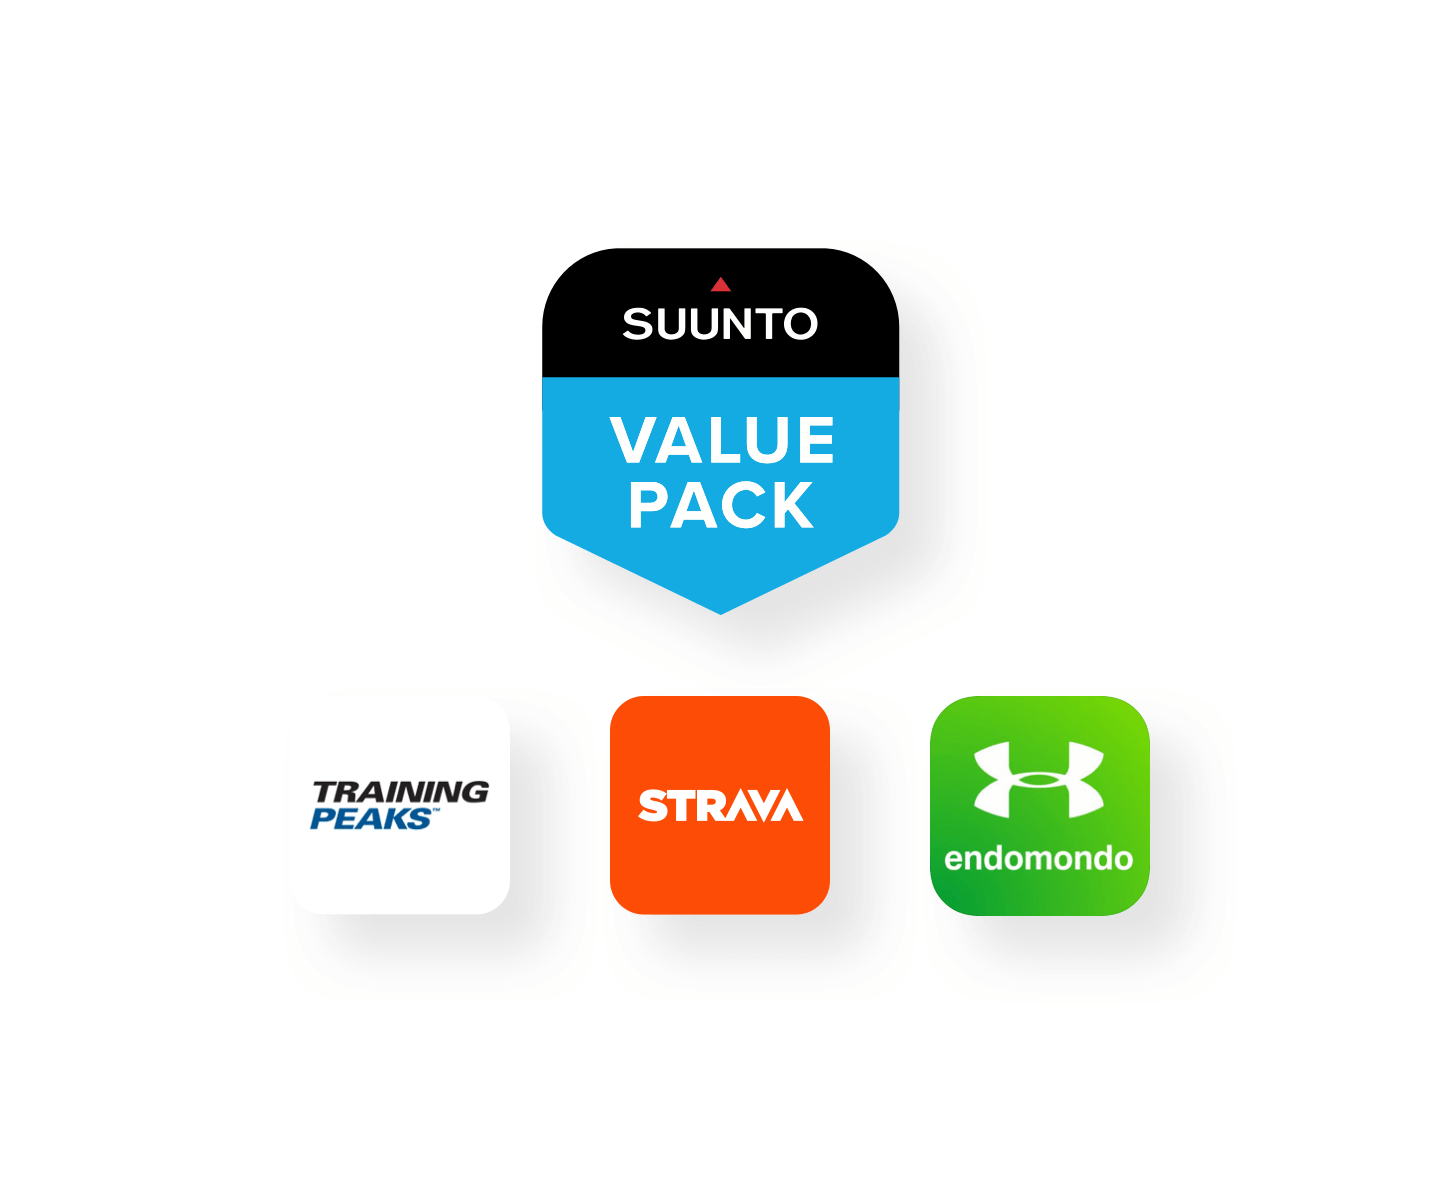 Make the most out of your sport through Suunto partner value